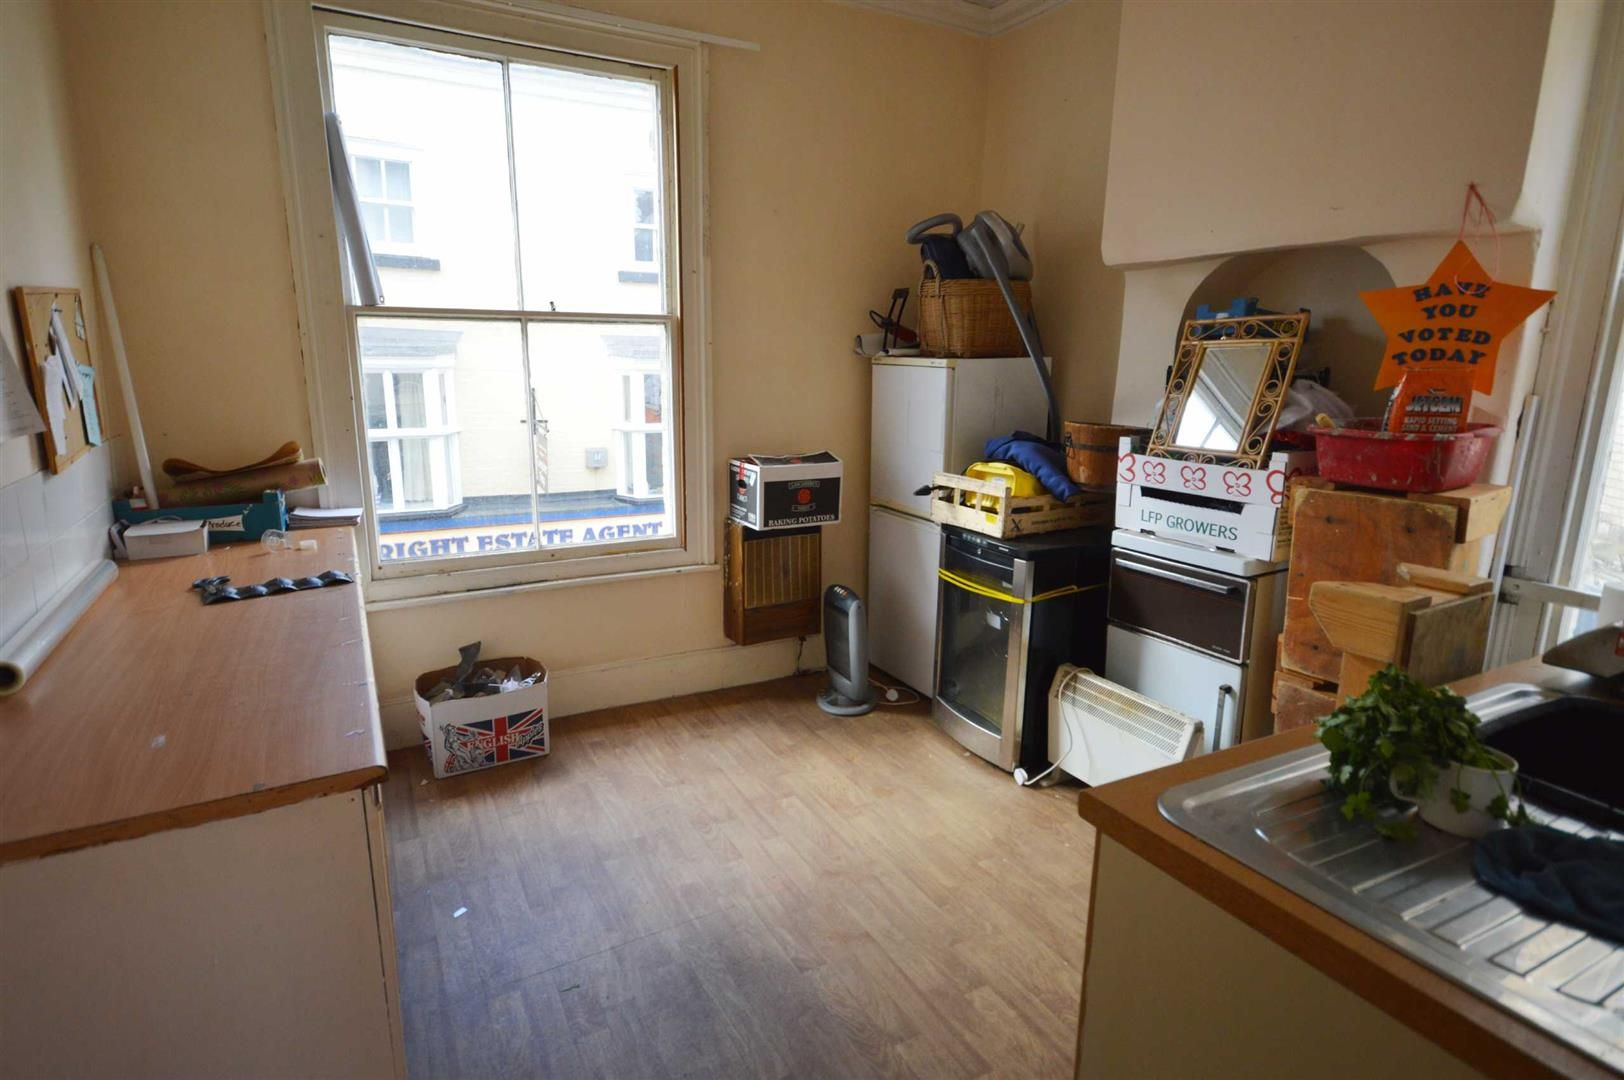 3 bed  for sale in Leominster  - Property Image 6